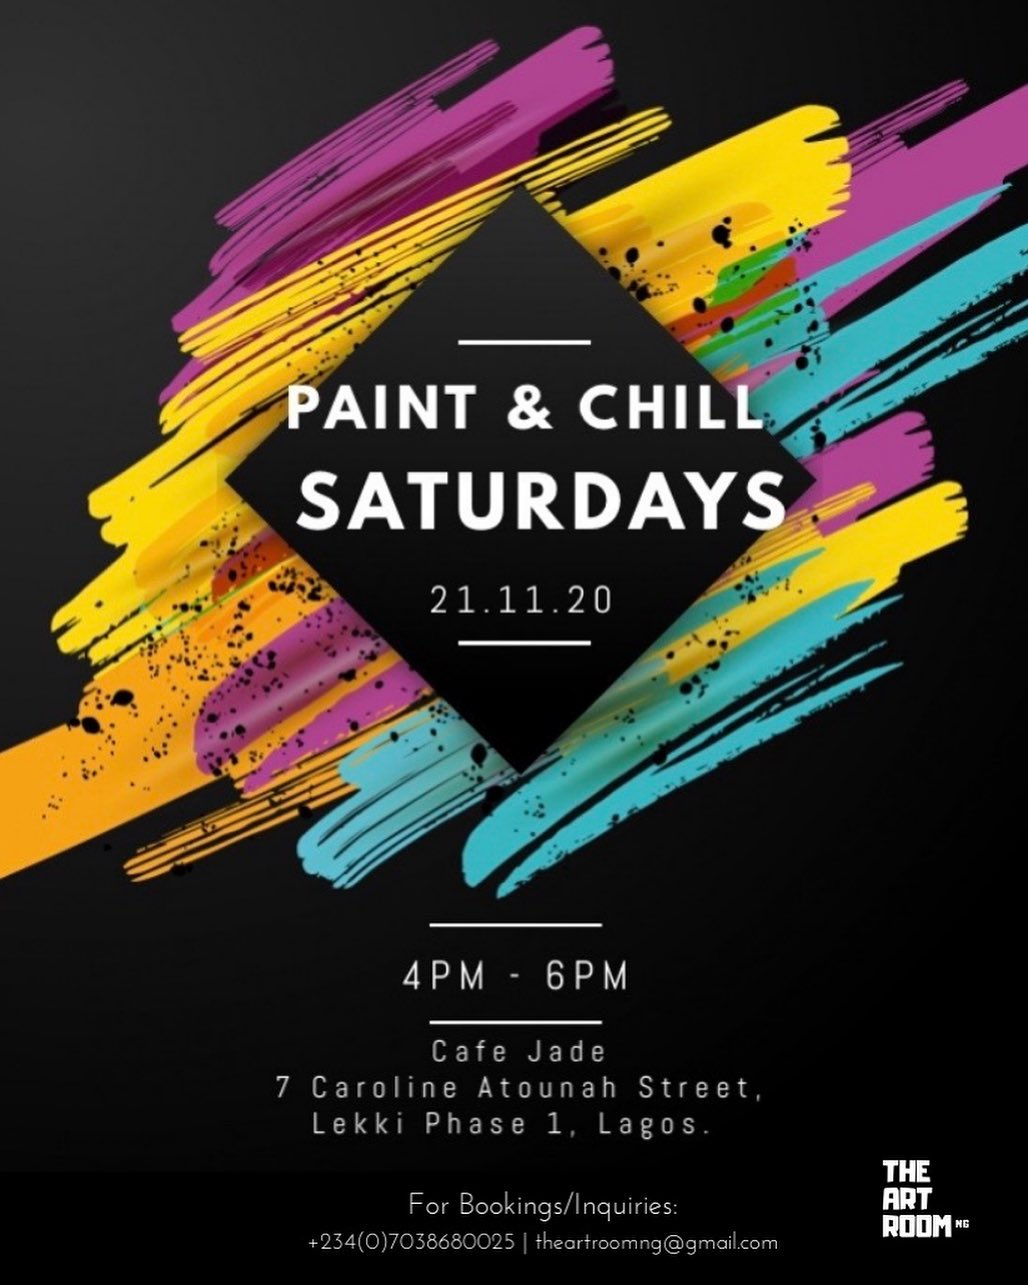 Paint & Chill Saturday